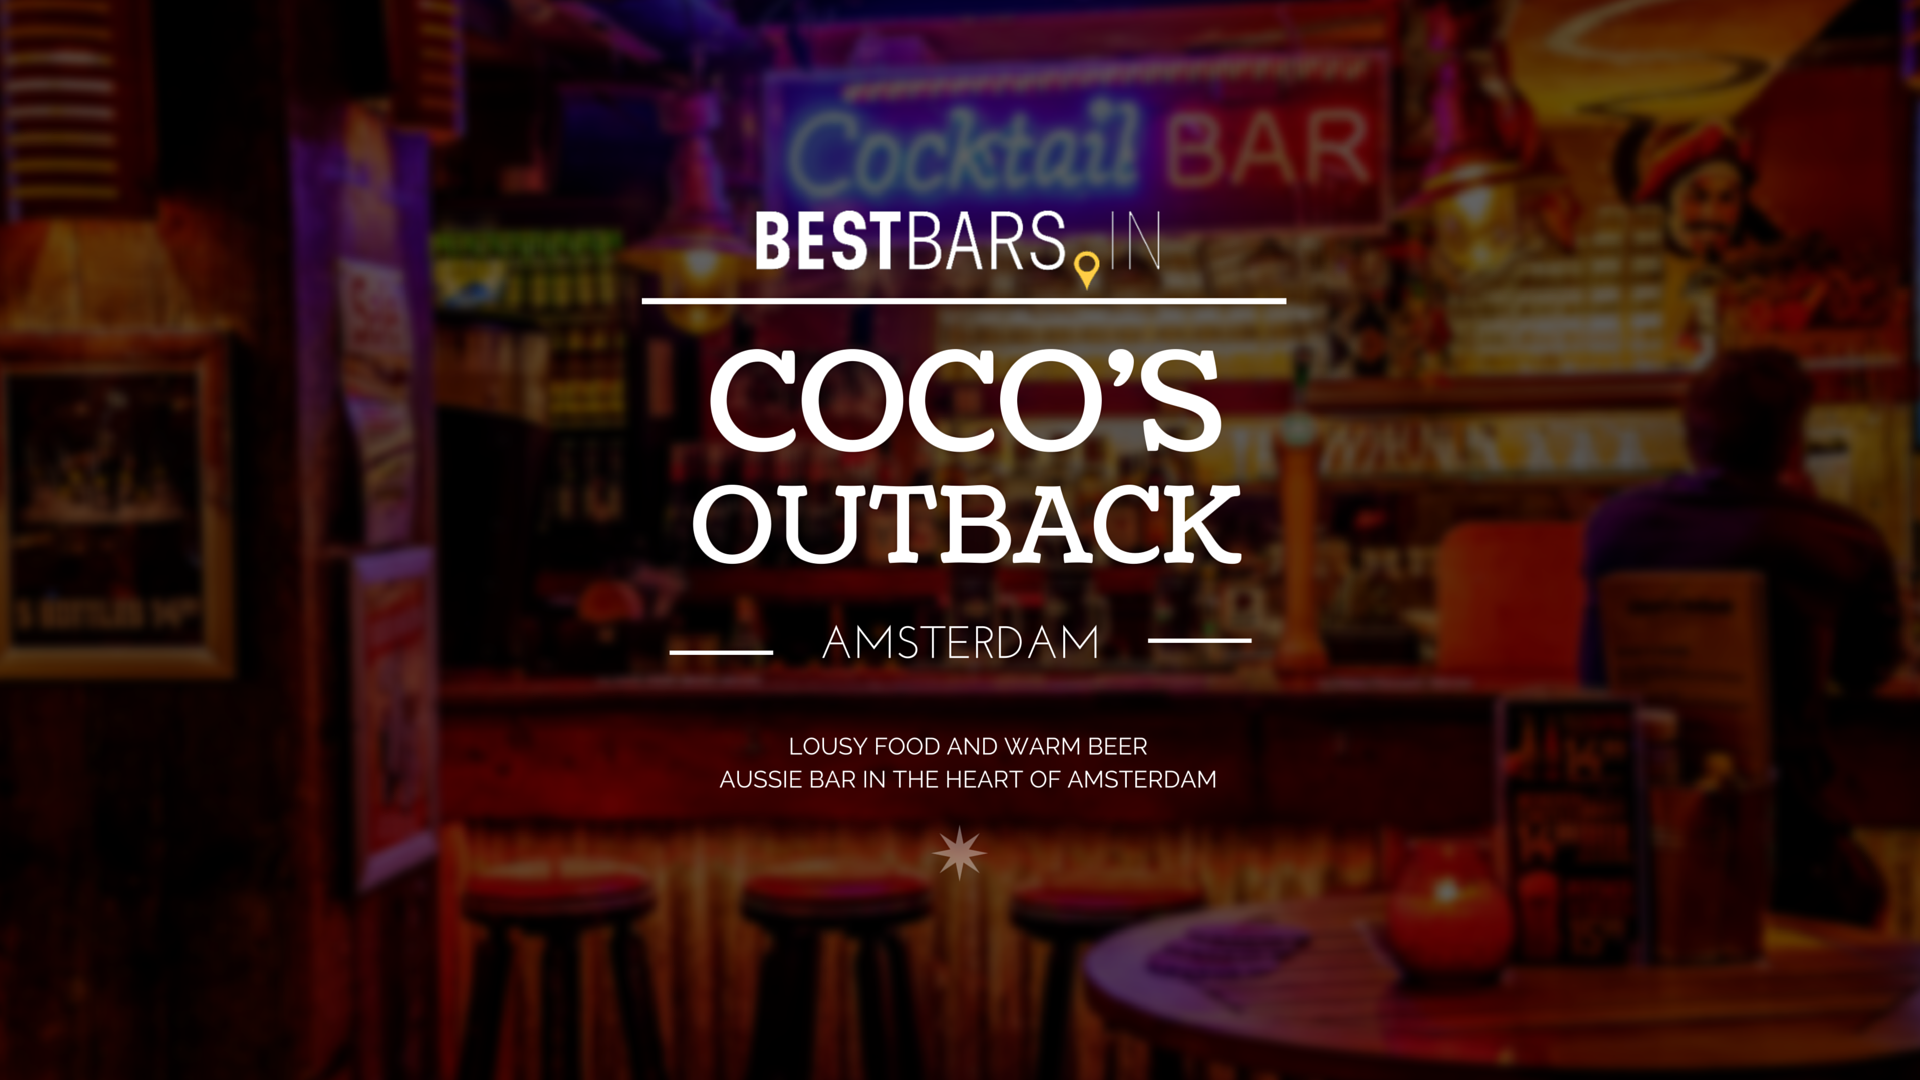 Coco's Outback - Australian bar in Amsterdam